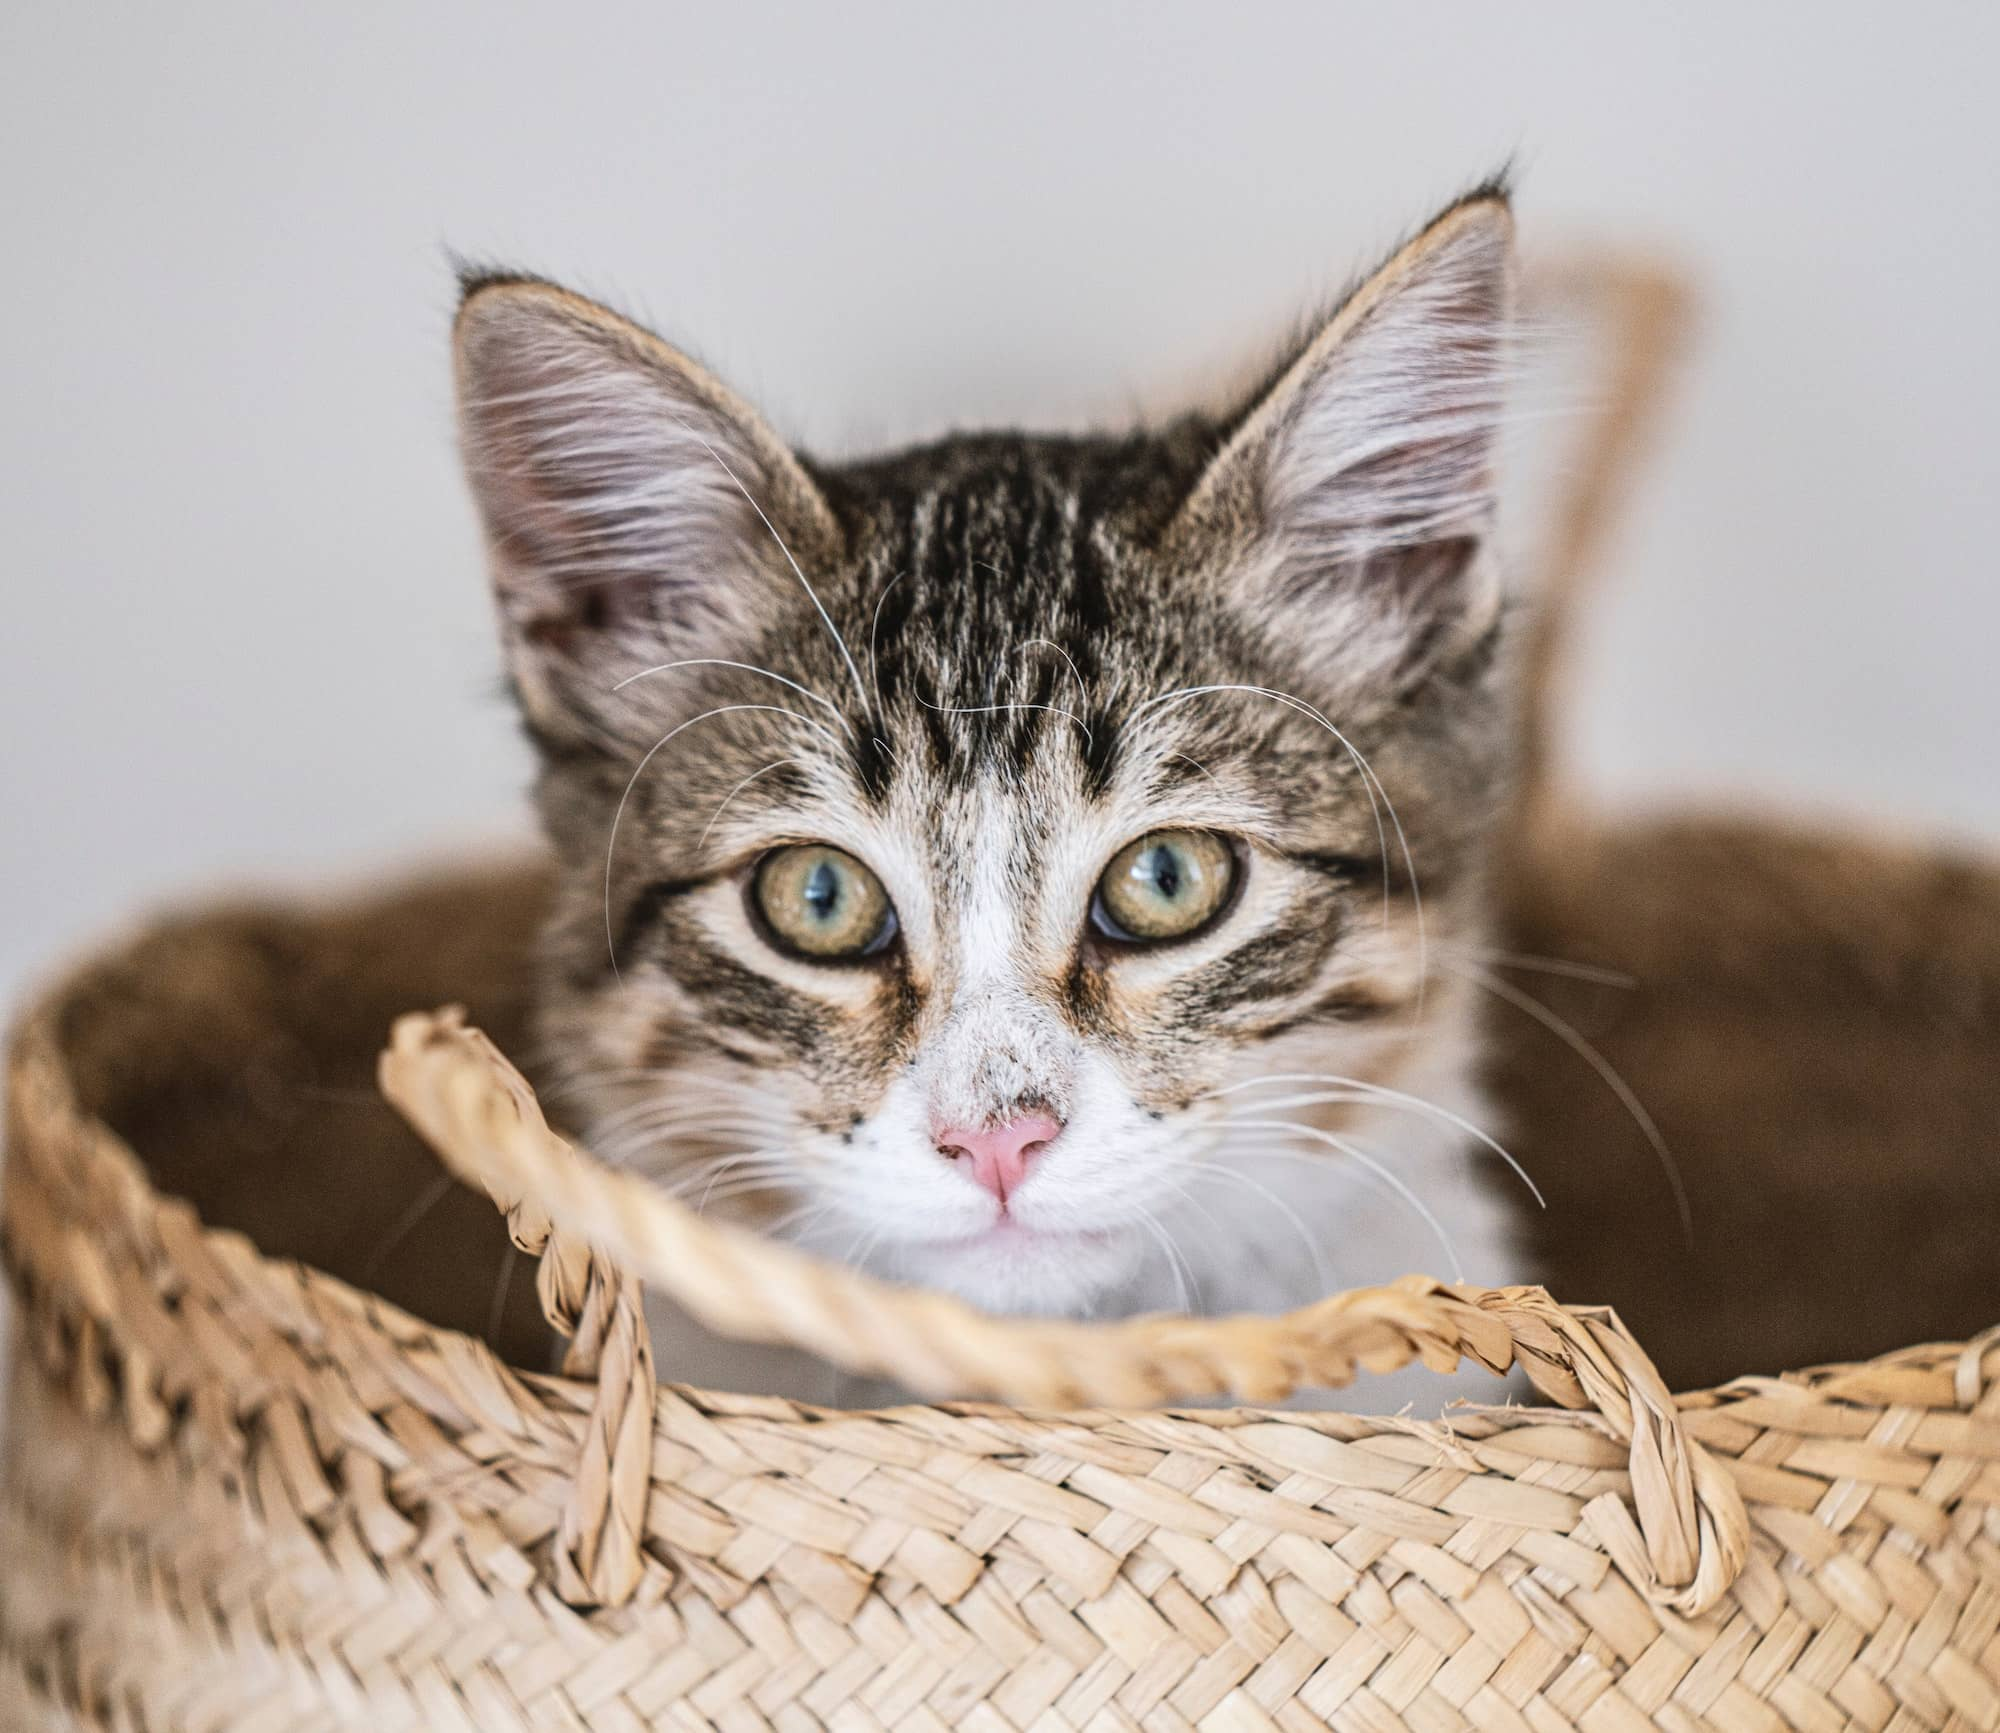 Cat sitting in a woven basket